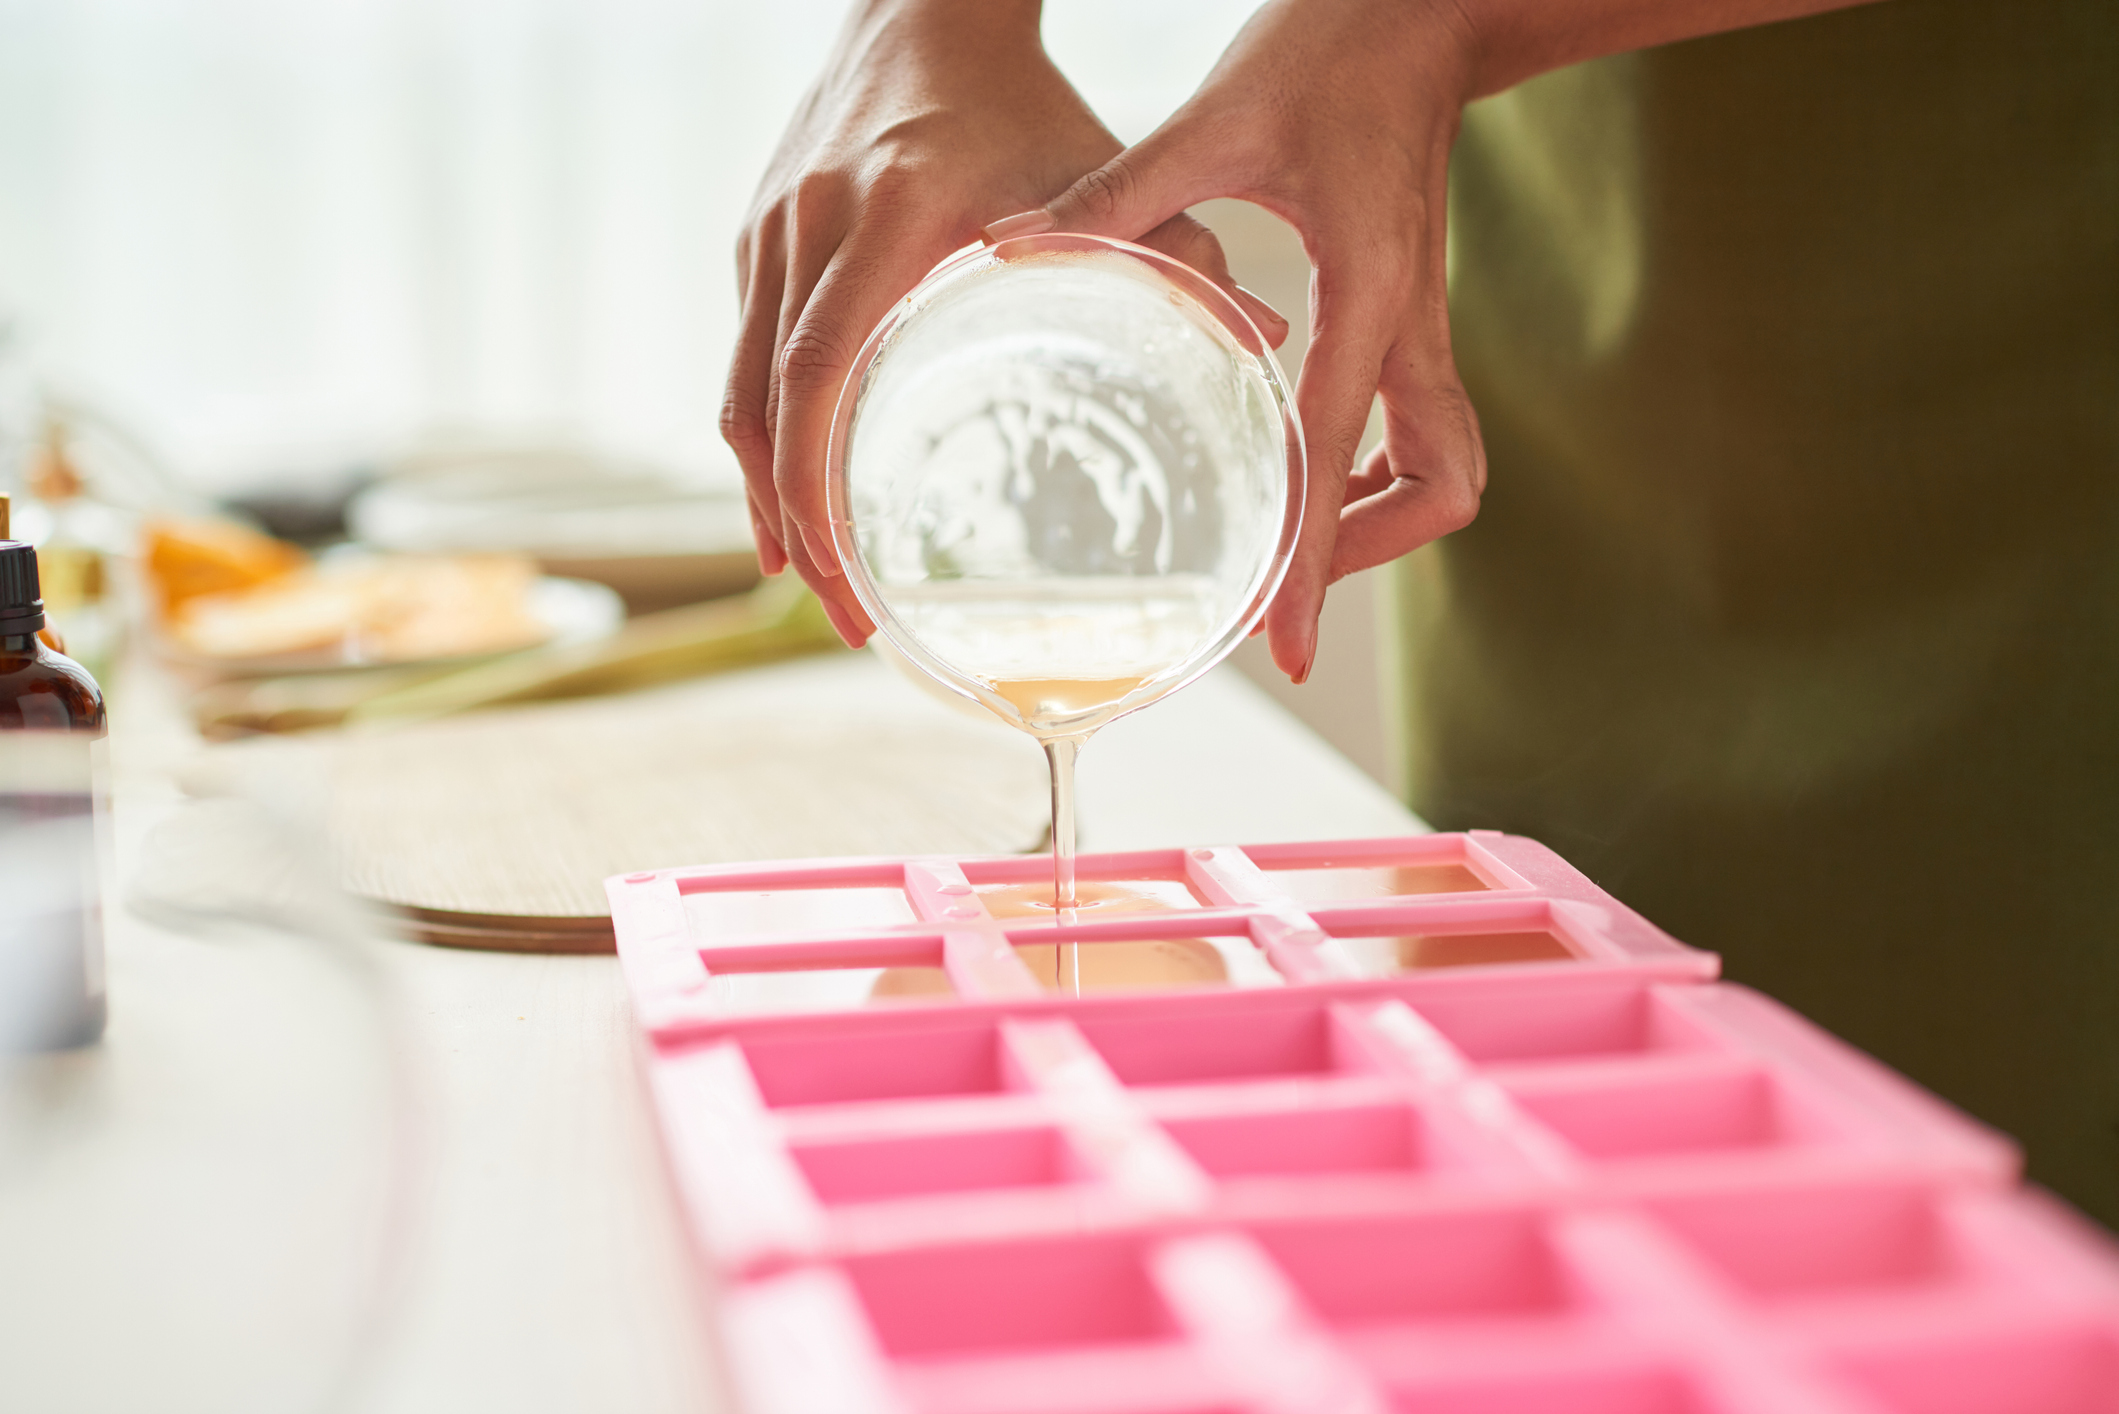 Close-up image of woman pouring soap mixture into plastic form